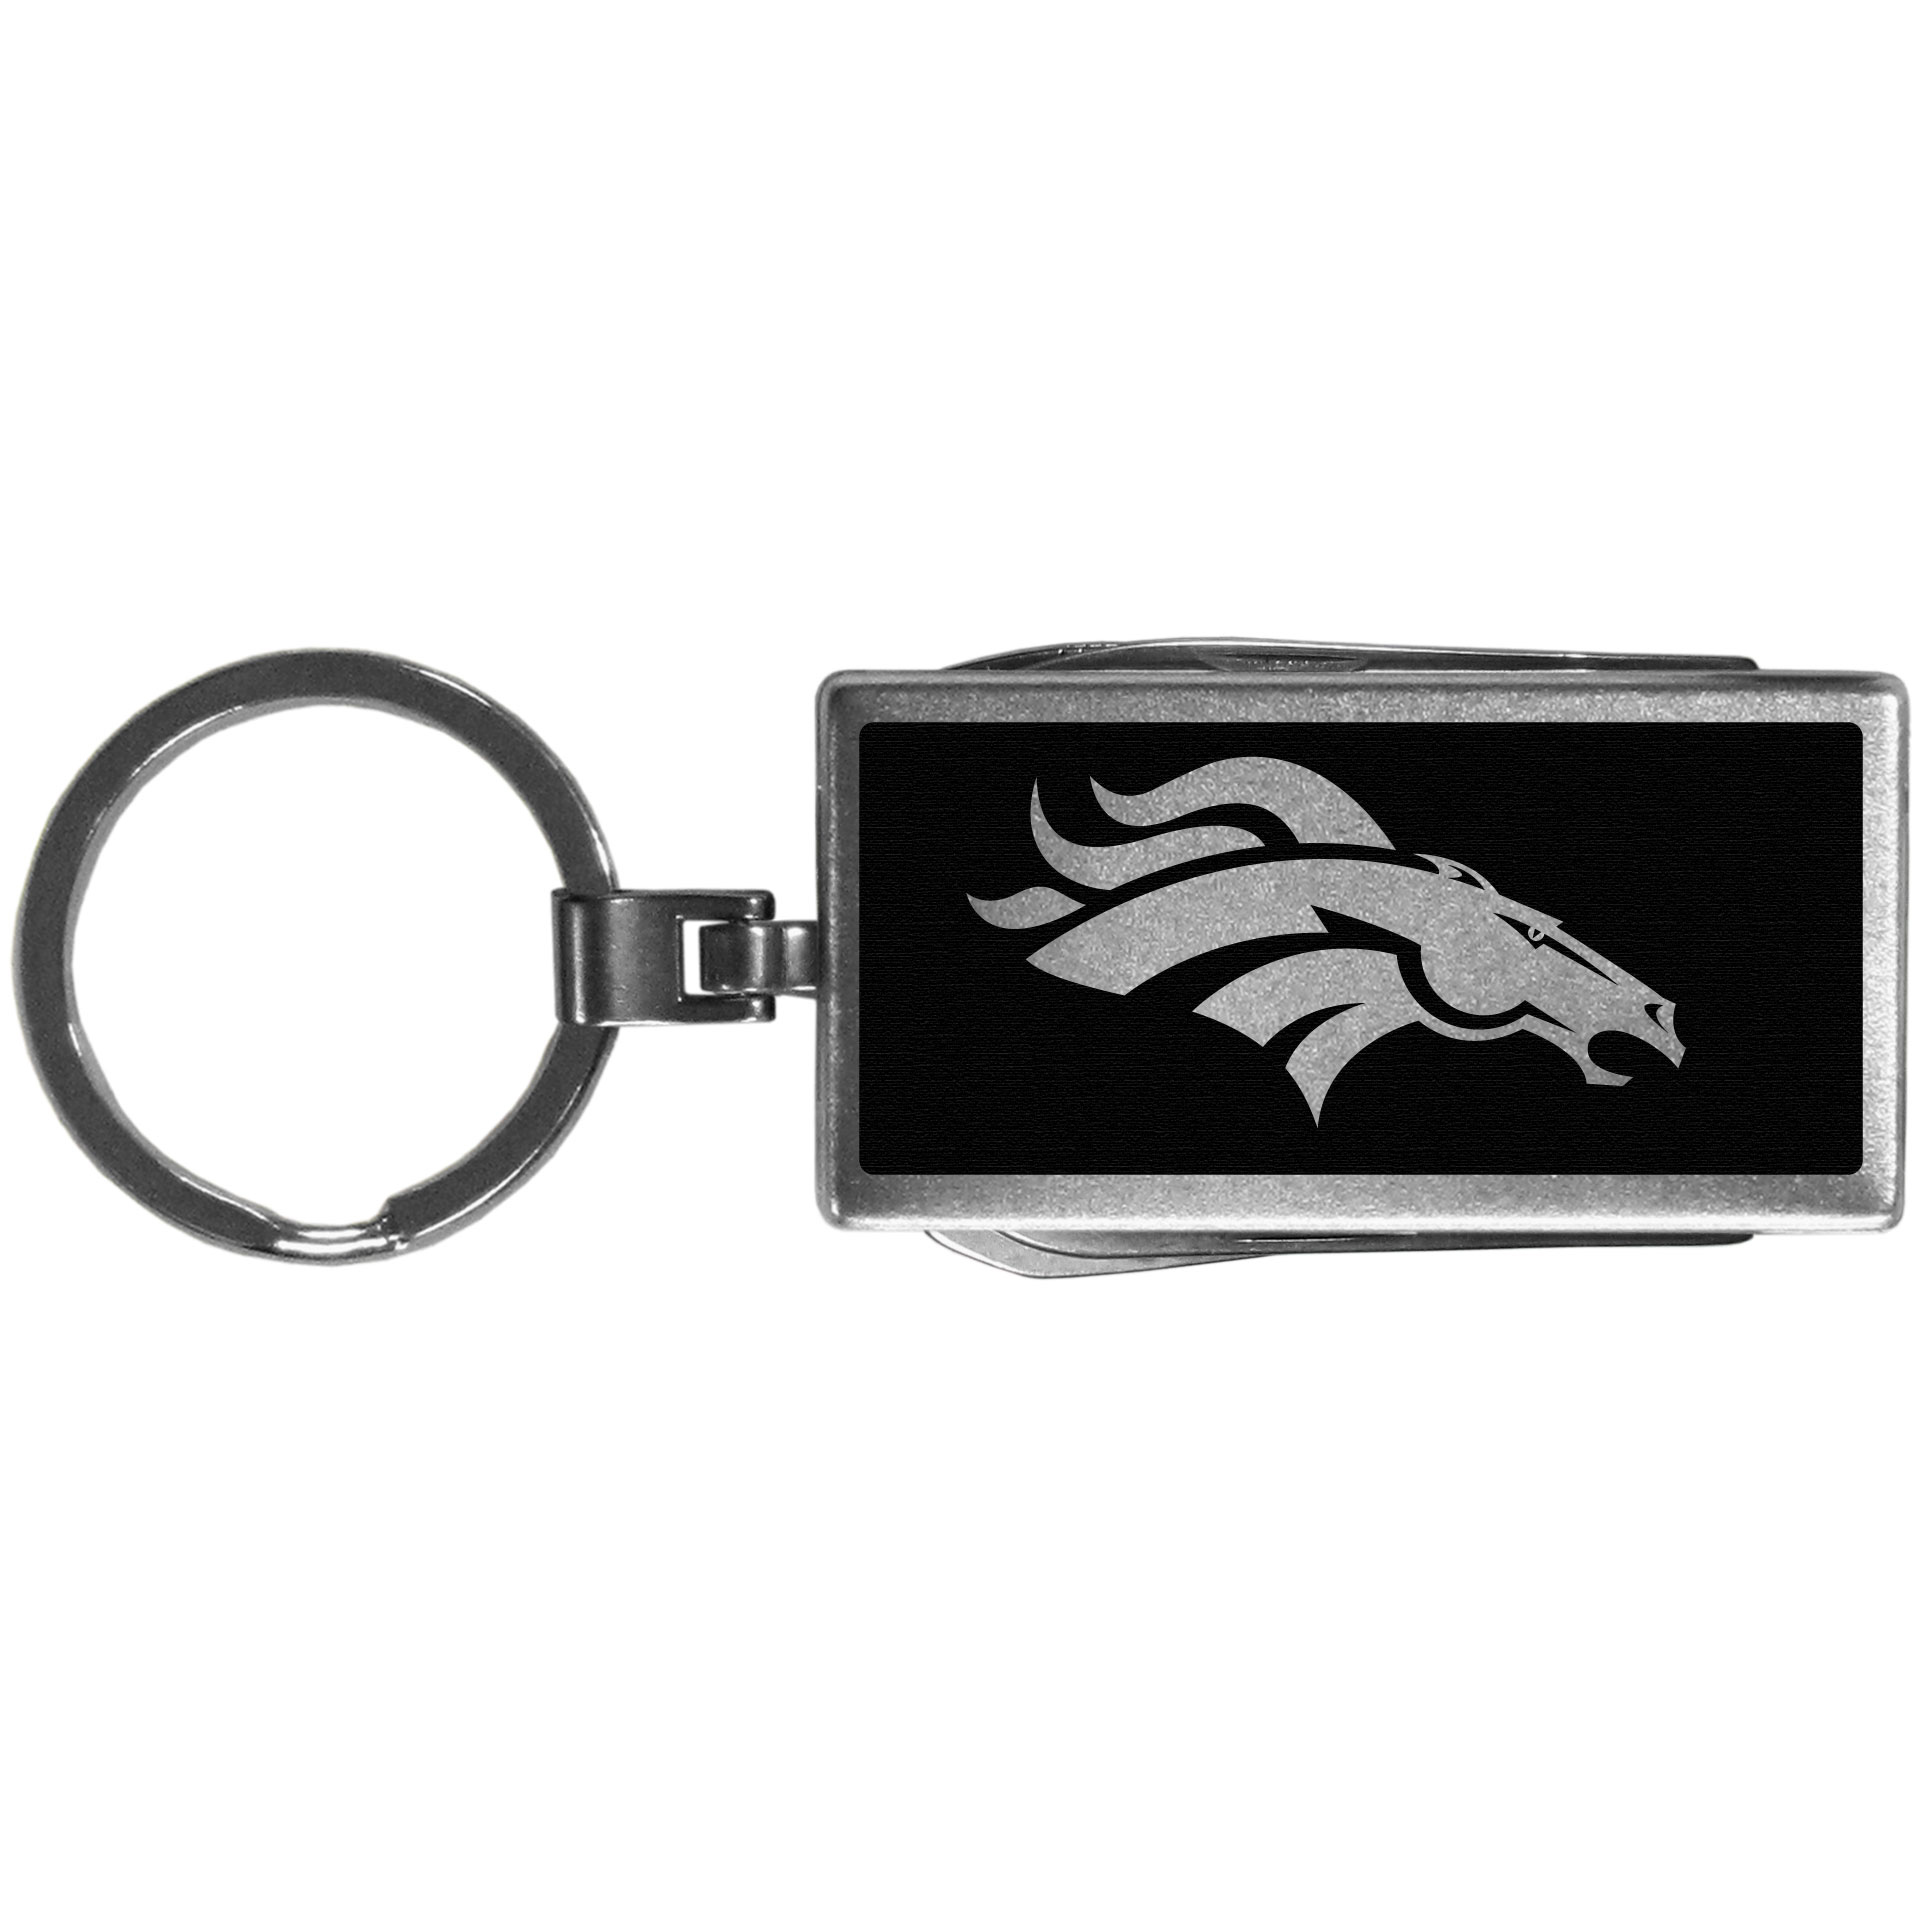 Denver Broncos Multi-tool Key Chain, Black - Be the hero at the tailgate, camping, or on a Friday night with your Denver Broncos Multi-Tool Keychain which comes complete with bottle opener, scissors, knife, nail file and screw driver. Be it opening a package or a beverage Siskiyou's Multi-Tool Keychain goes wherever your keys do. The keychain hangs at 4 inches long when closed.